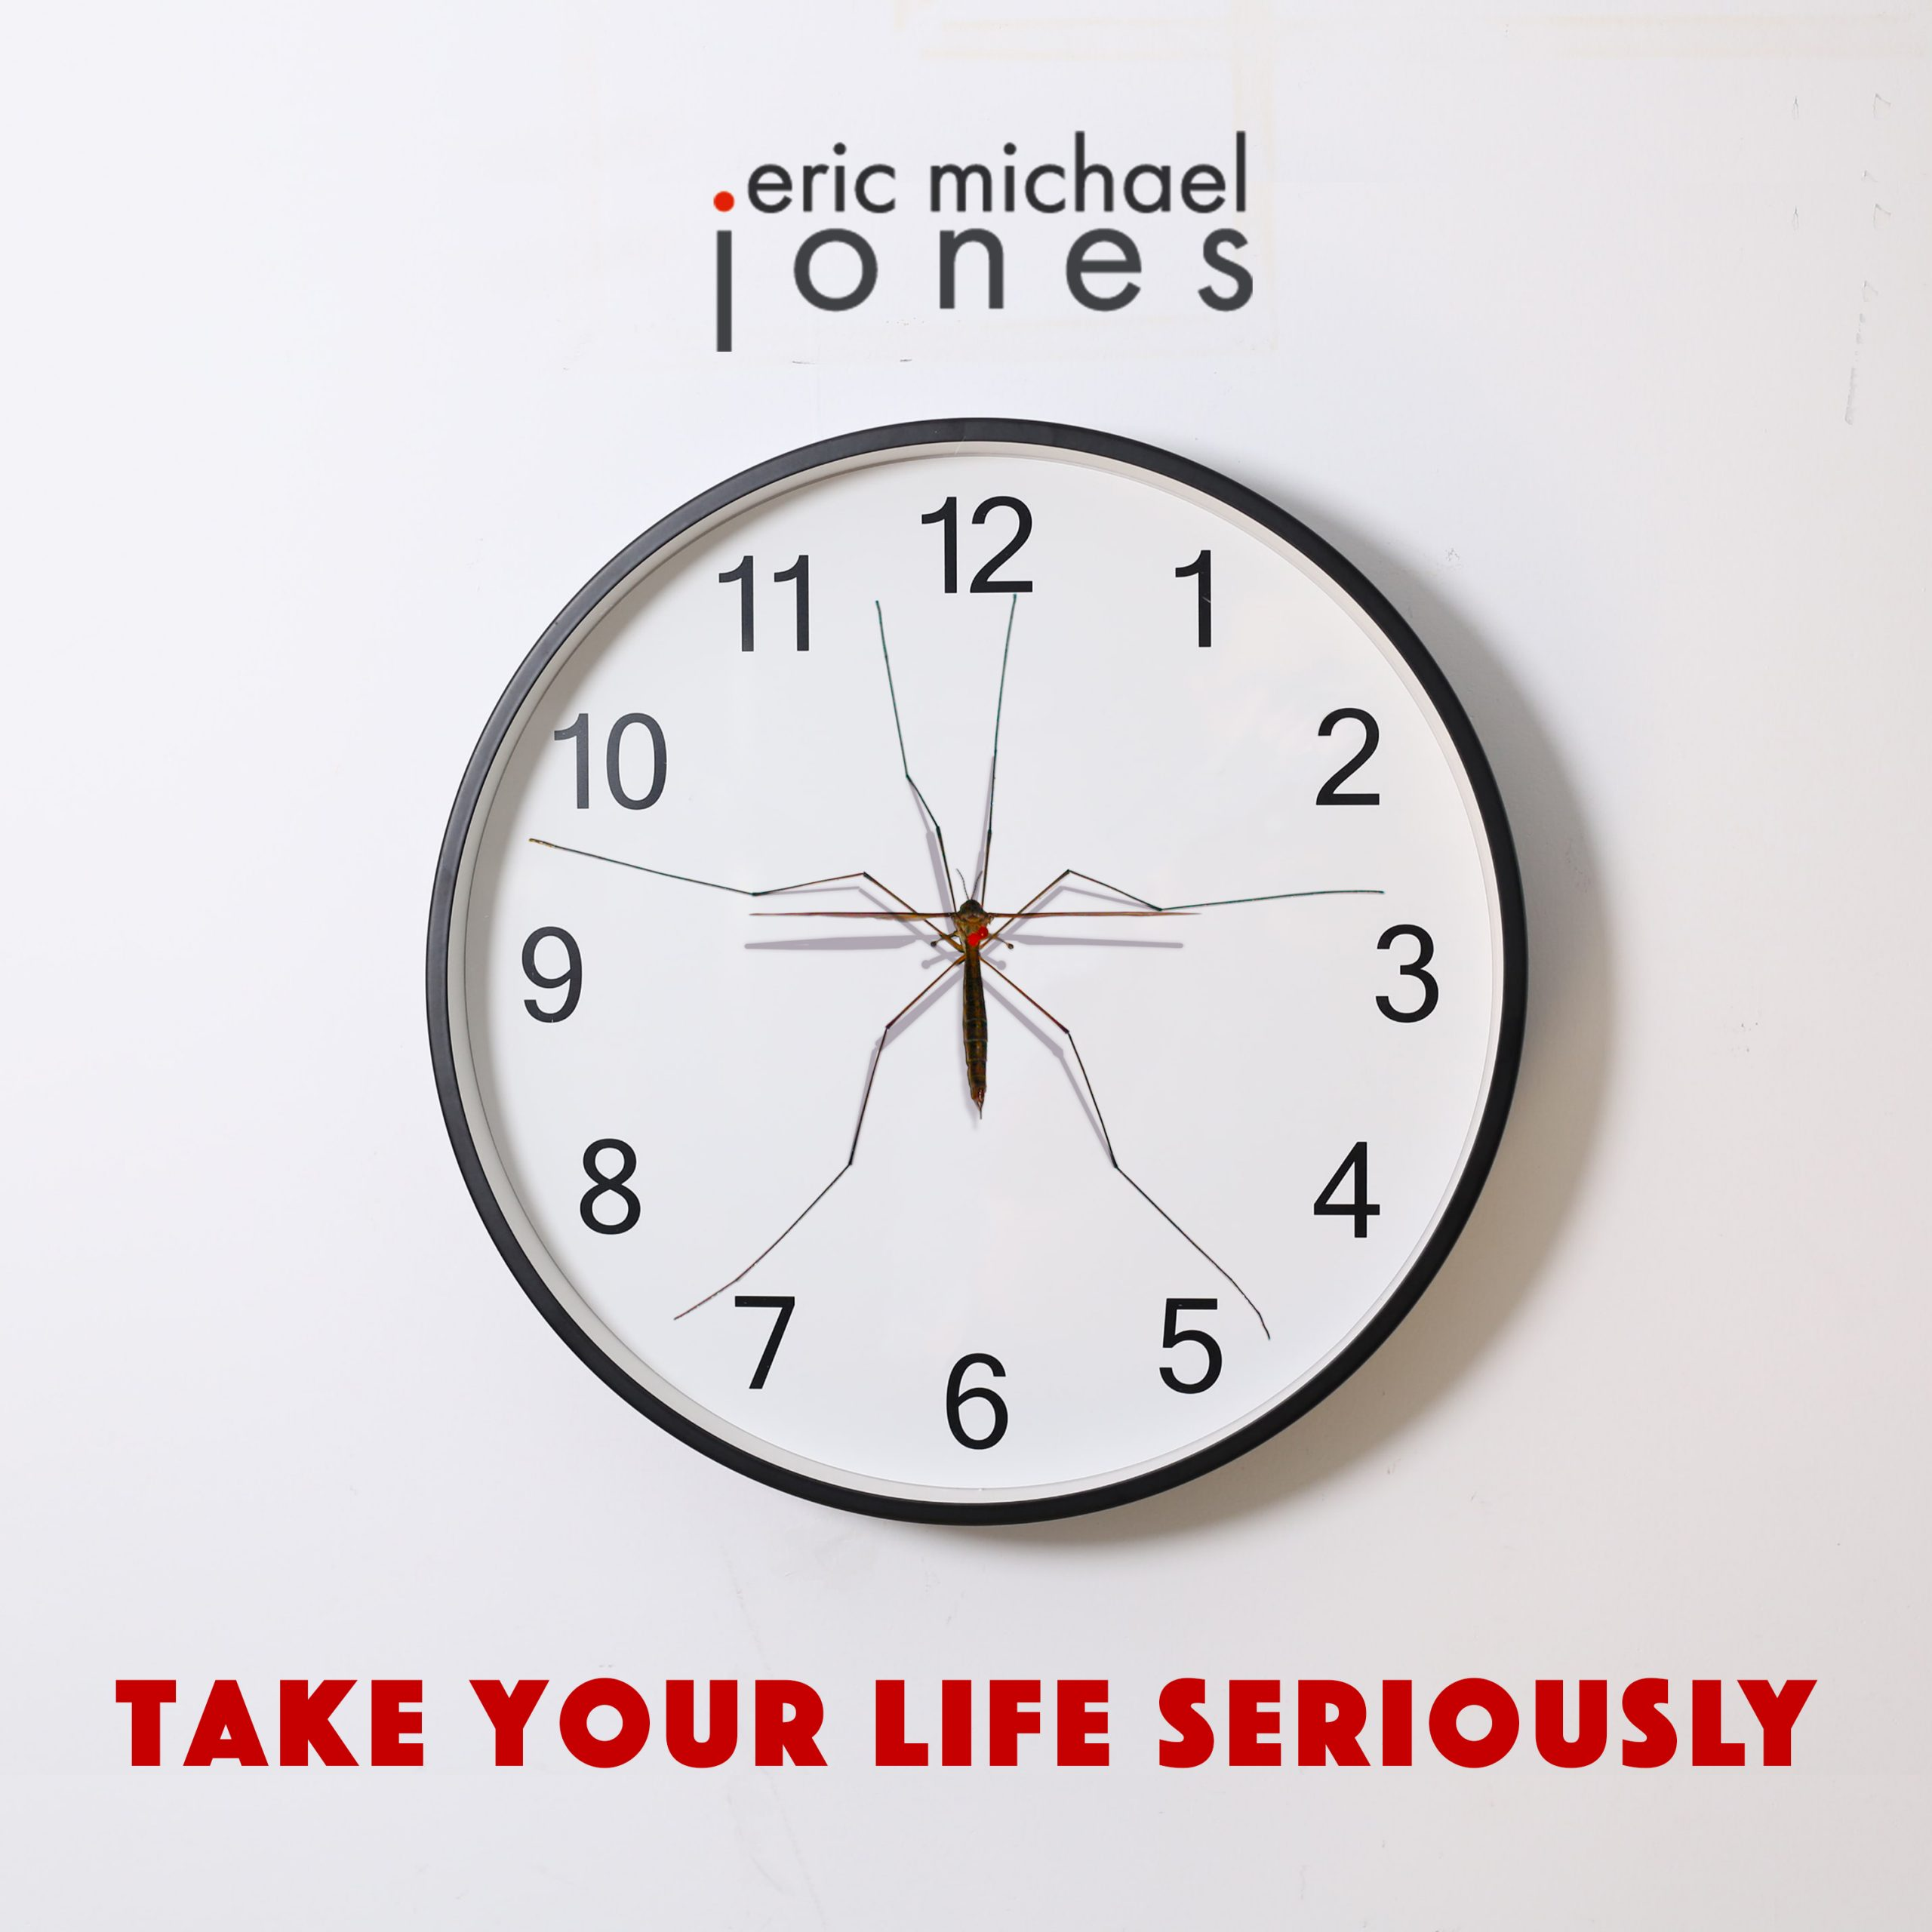 Cover art for Take Your Life Seriously, showing a clock with a giant mosquito instead of hands